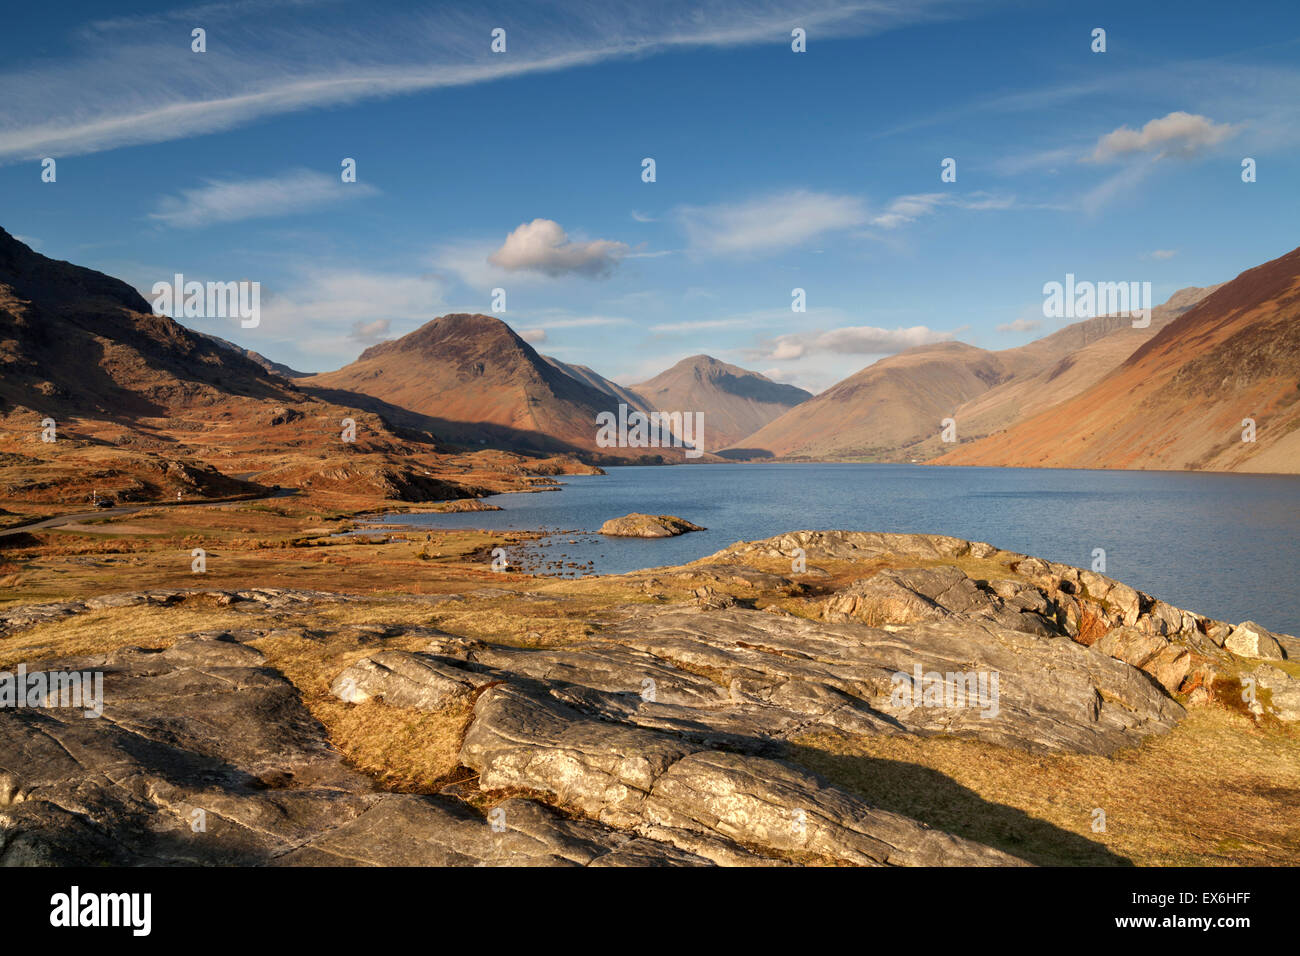 Wastwater and Wasdale Head Cumbria in late aftrenoon golden light, Lake District, UK - Stock Image